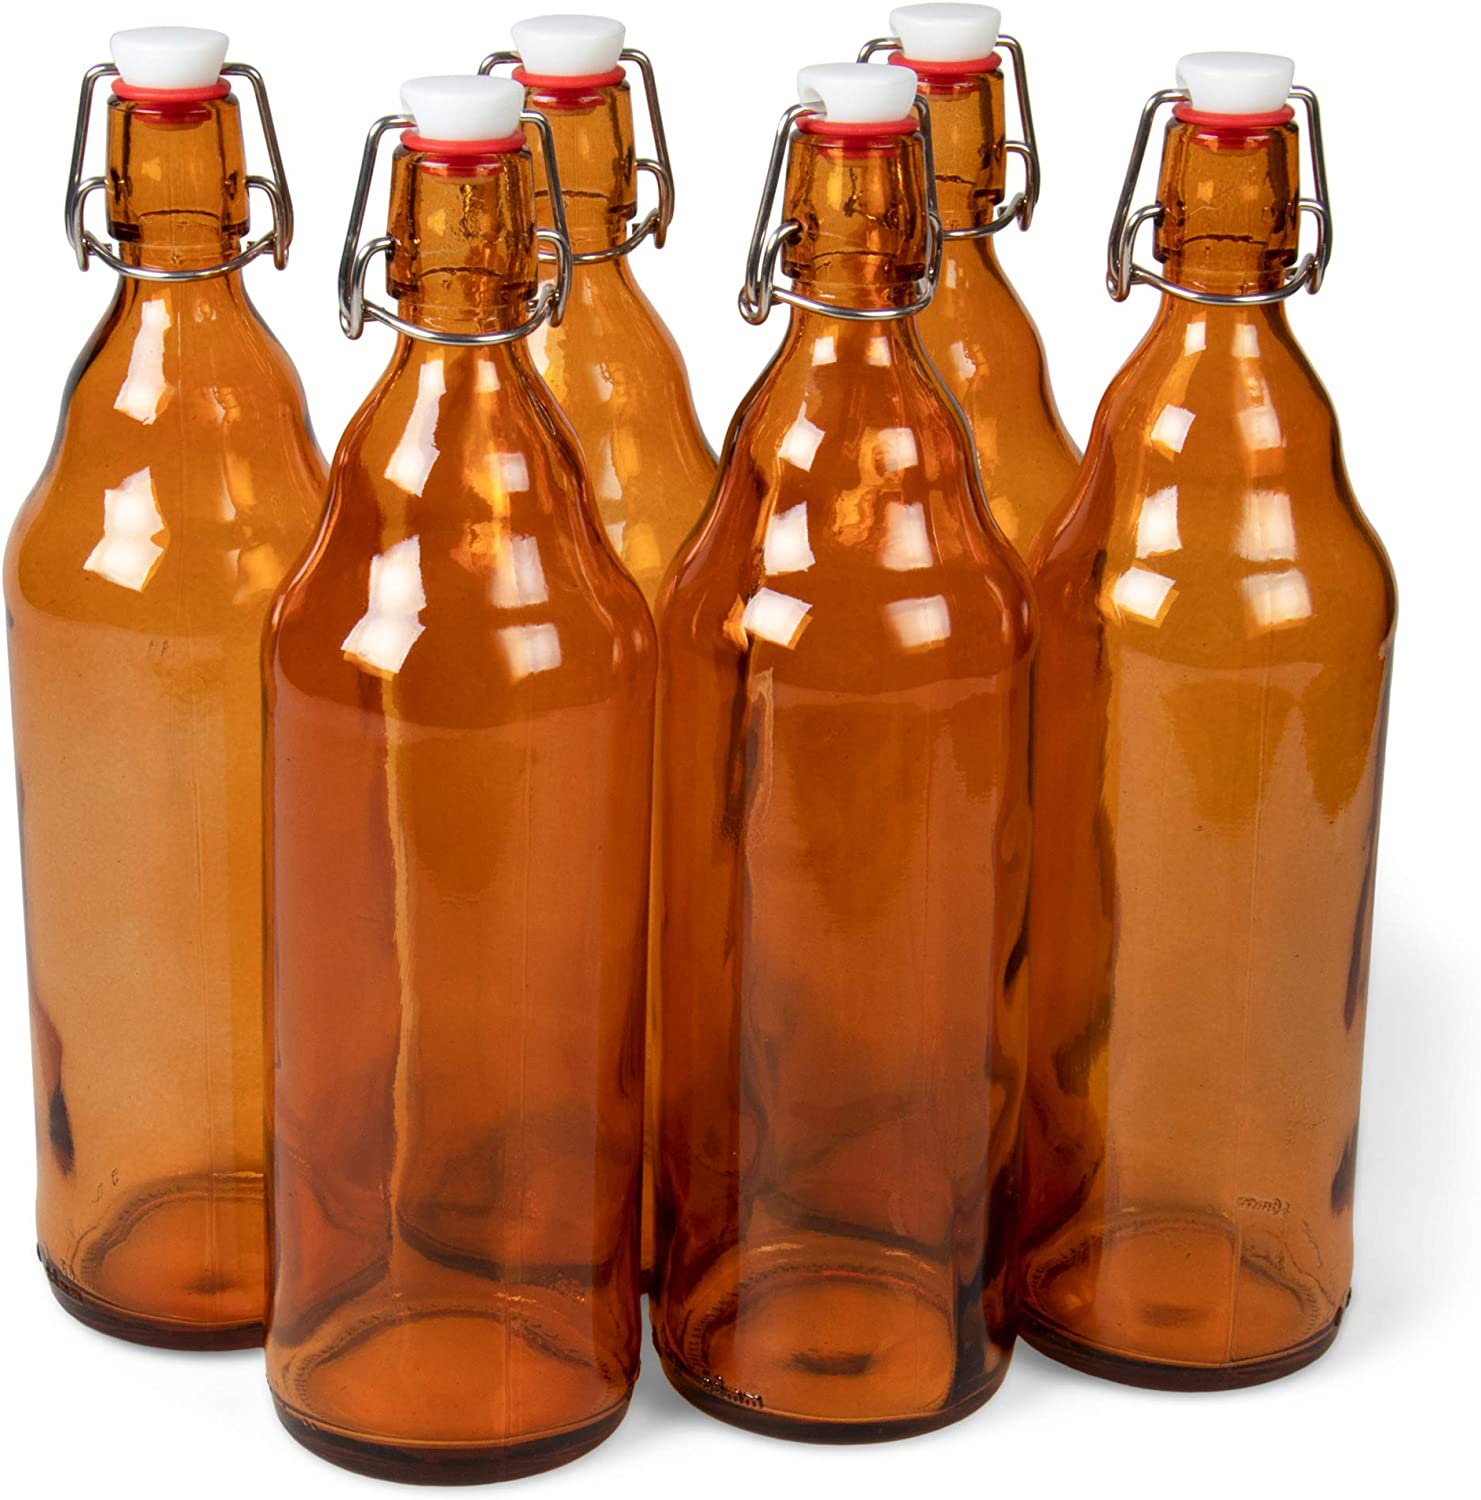 33 oz. Amber Glass Grolsch Beer Bottles, Quart Size – Airtight Seal with Swing Top/Flip Top - Supplies for Home Brewing & Fermenting of Alcohol, Kombucha Tea, Wine, Homemade Soda (6-pack)